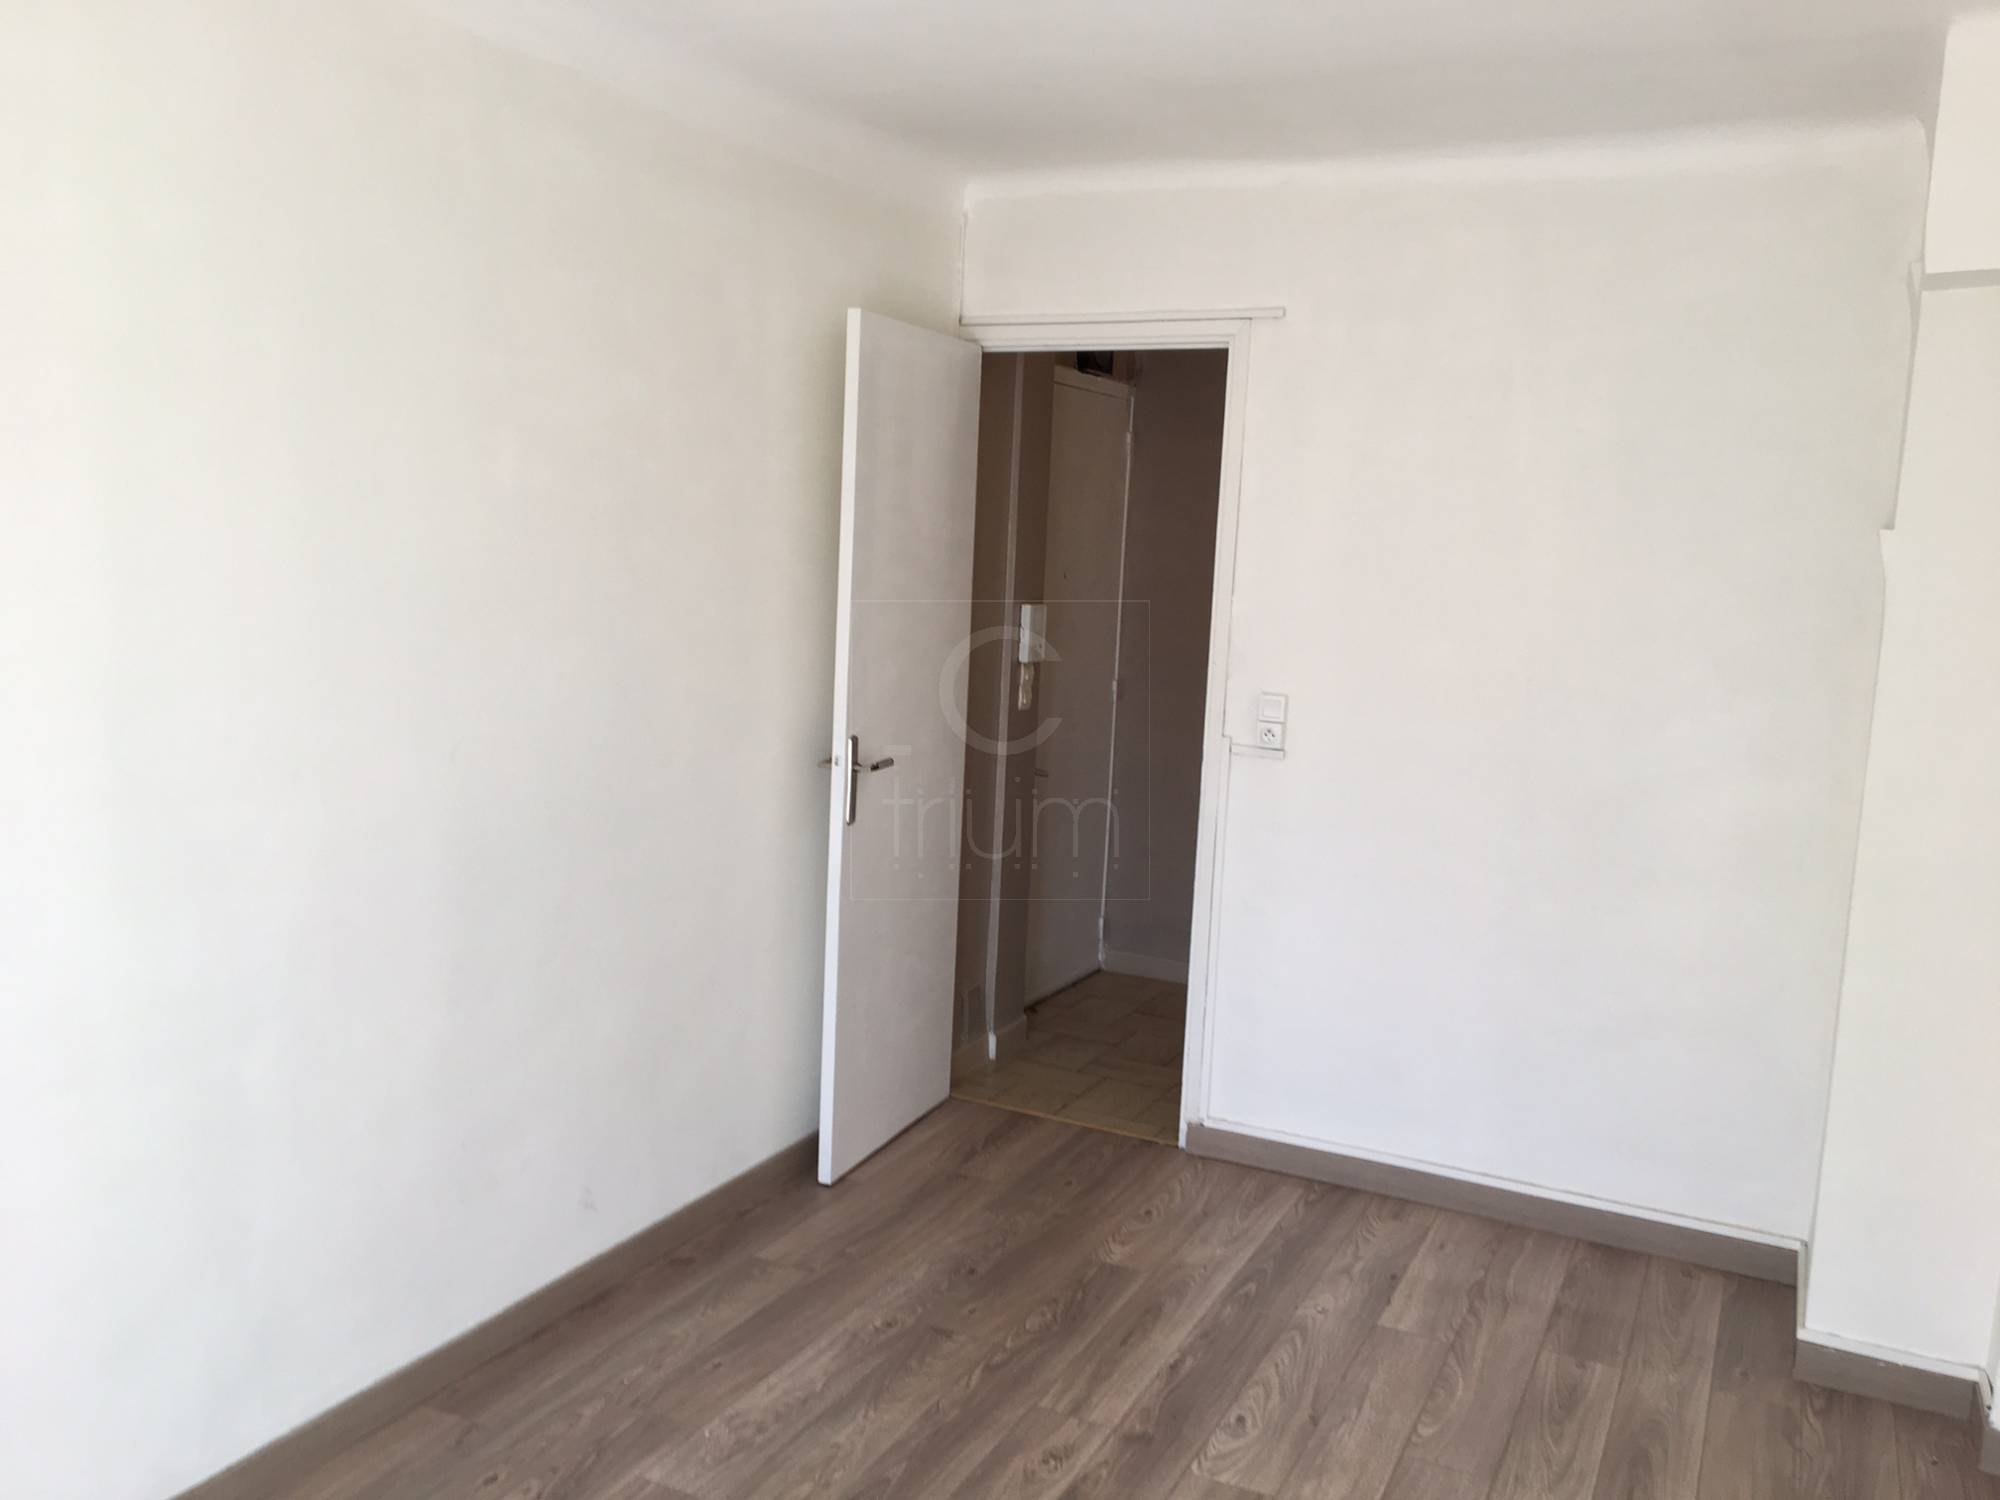 Location Appartement T3 F3 Marseille Endoume 4 Septembe Agence immobilire Marseille 7me